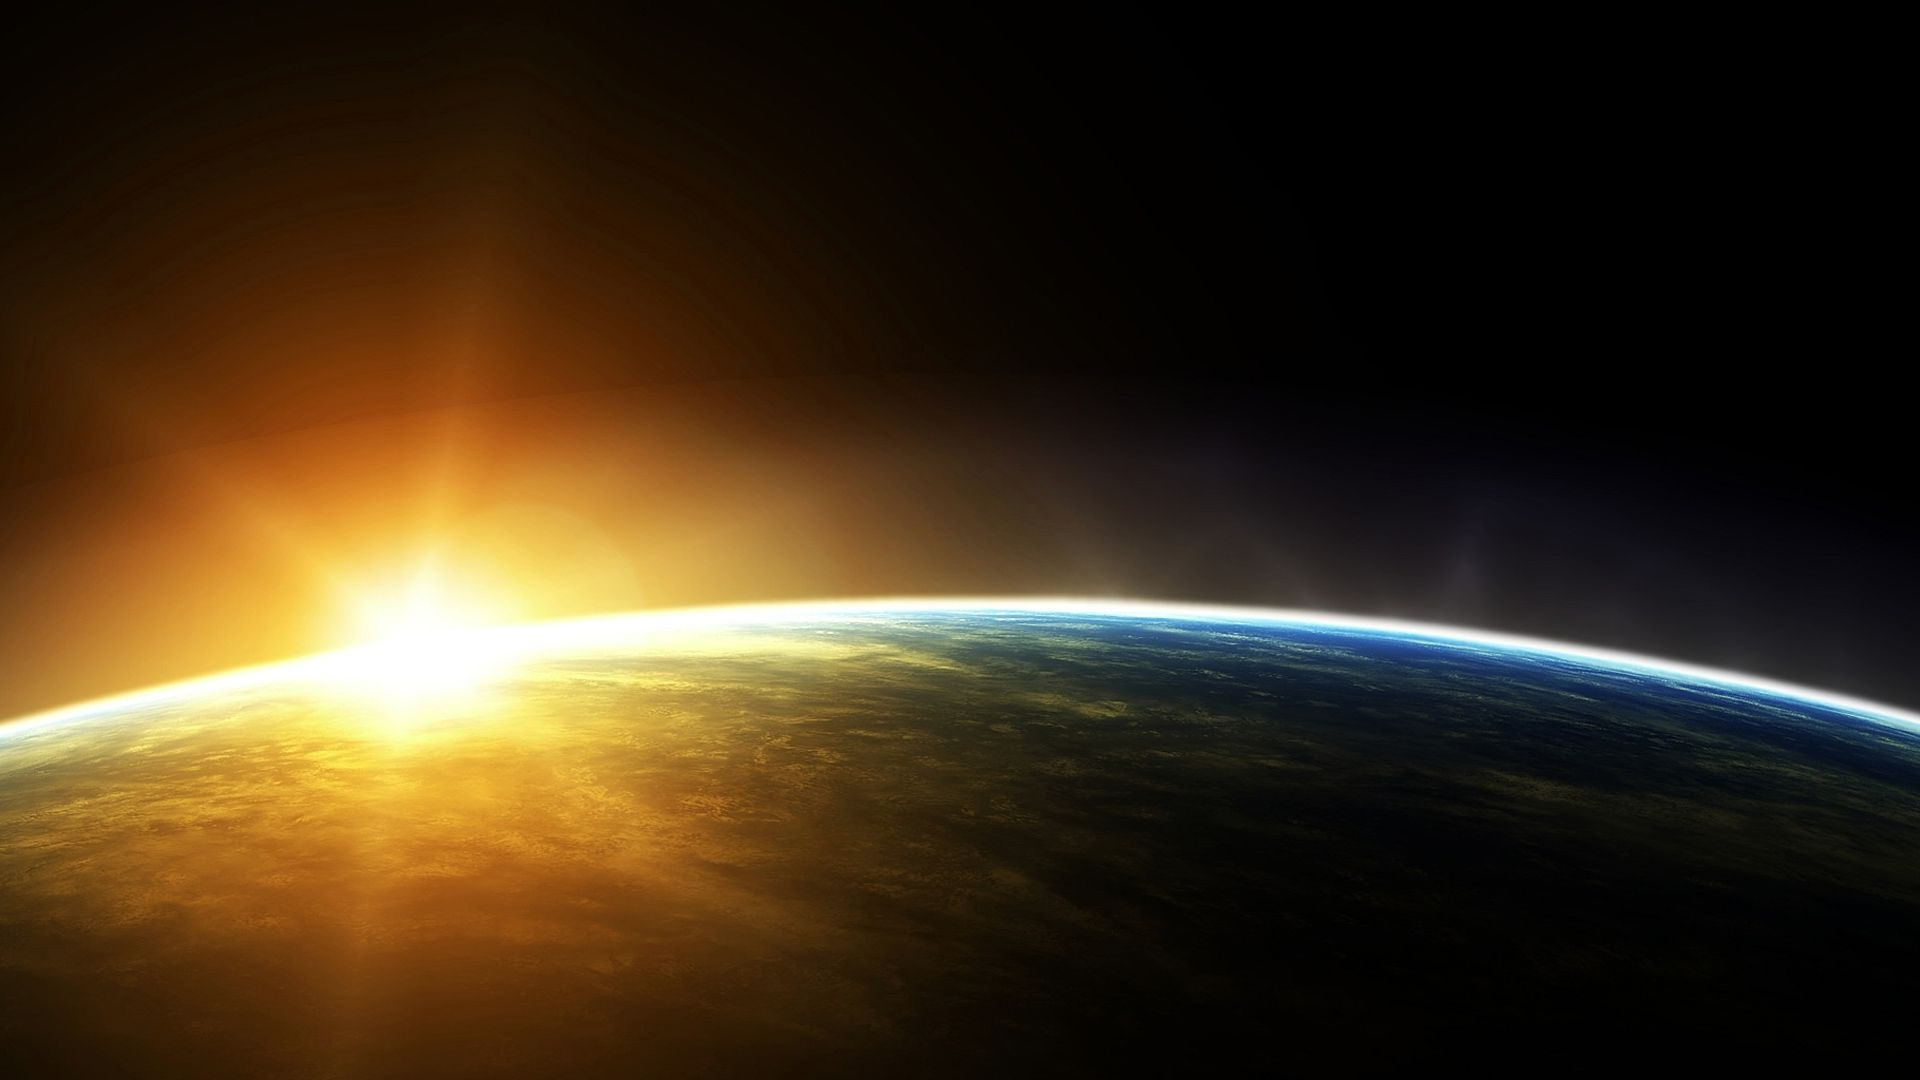 Nasa Space Earth Sunrise from Space NASA HD Wallpaper